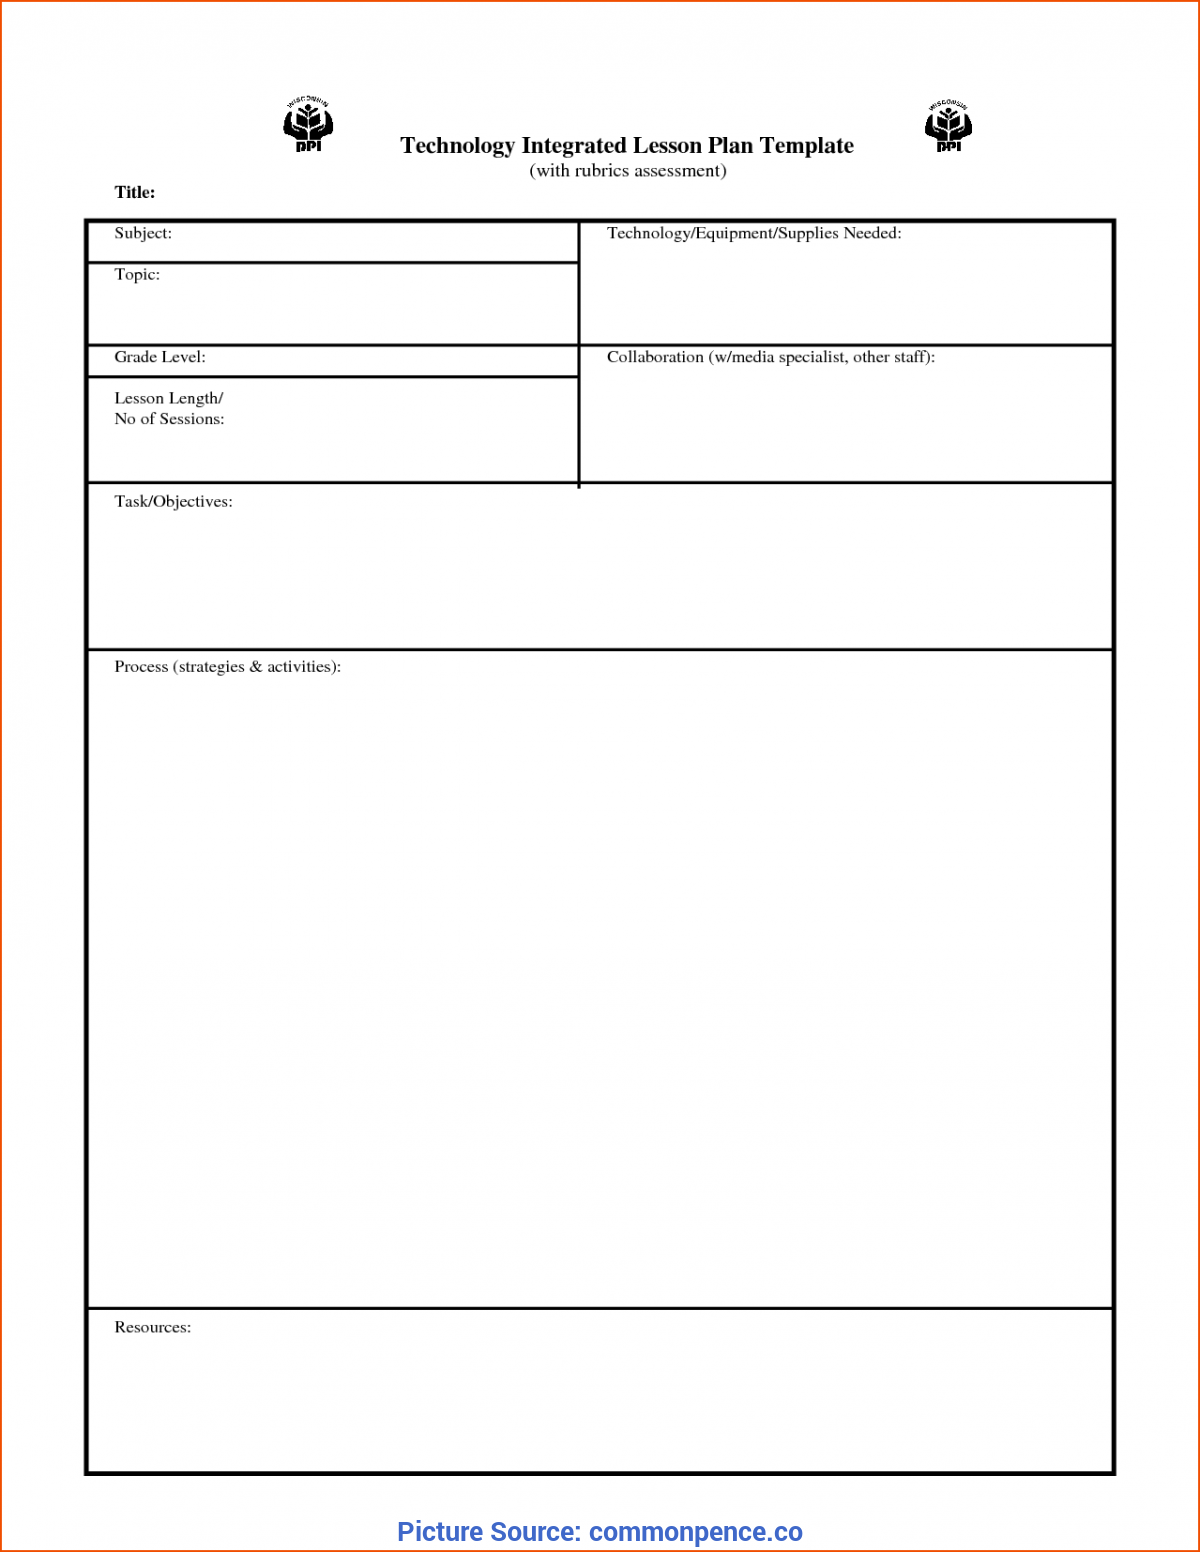 Typical Siop Lesson Plan Template Word Doc Simple Lesson Plan Template Word - Commonpenc